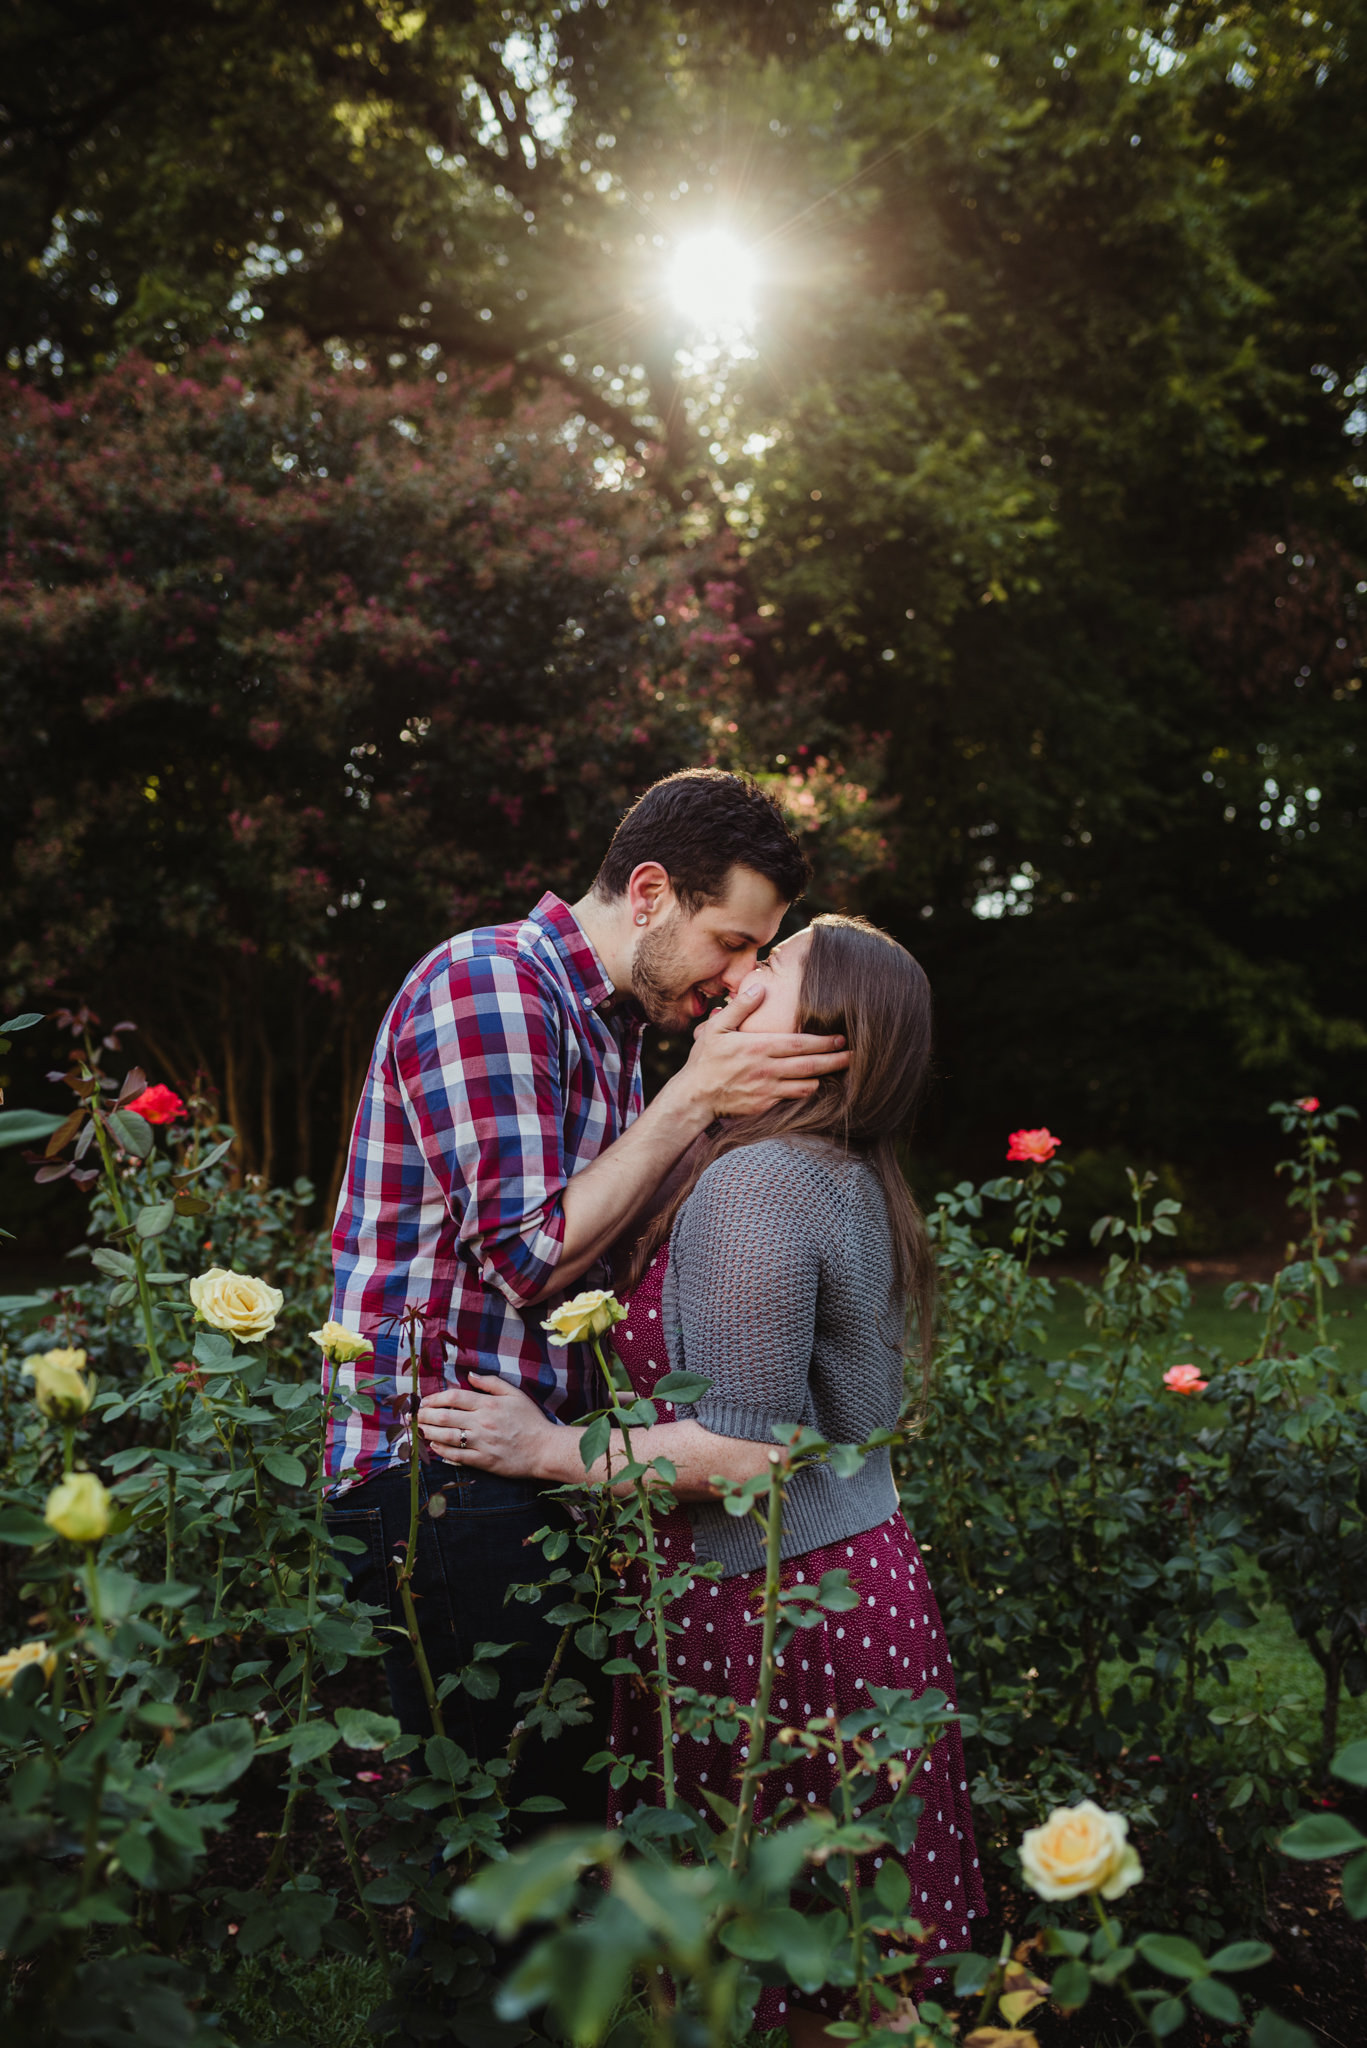 The bride and groom to be almost kiss under the sunset at the Raleigh Rose Garden during their engagement session with Rose Trail Images.